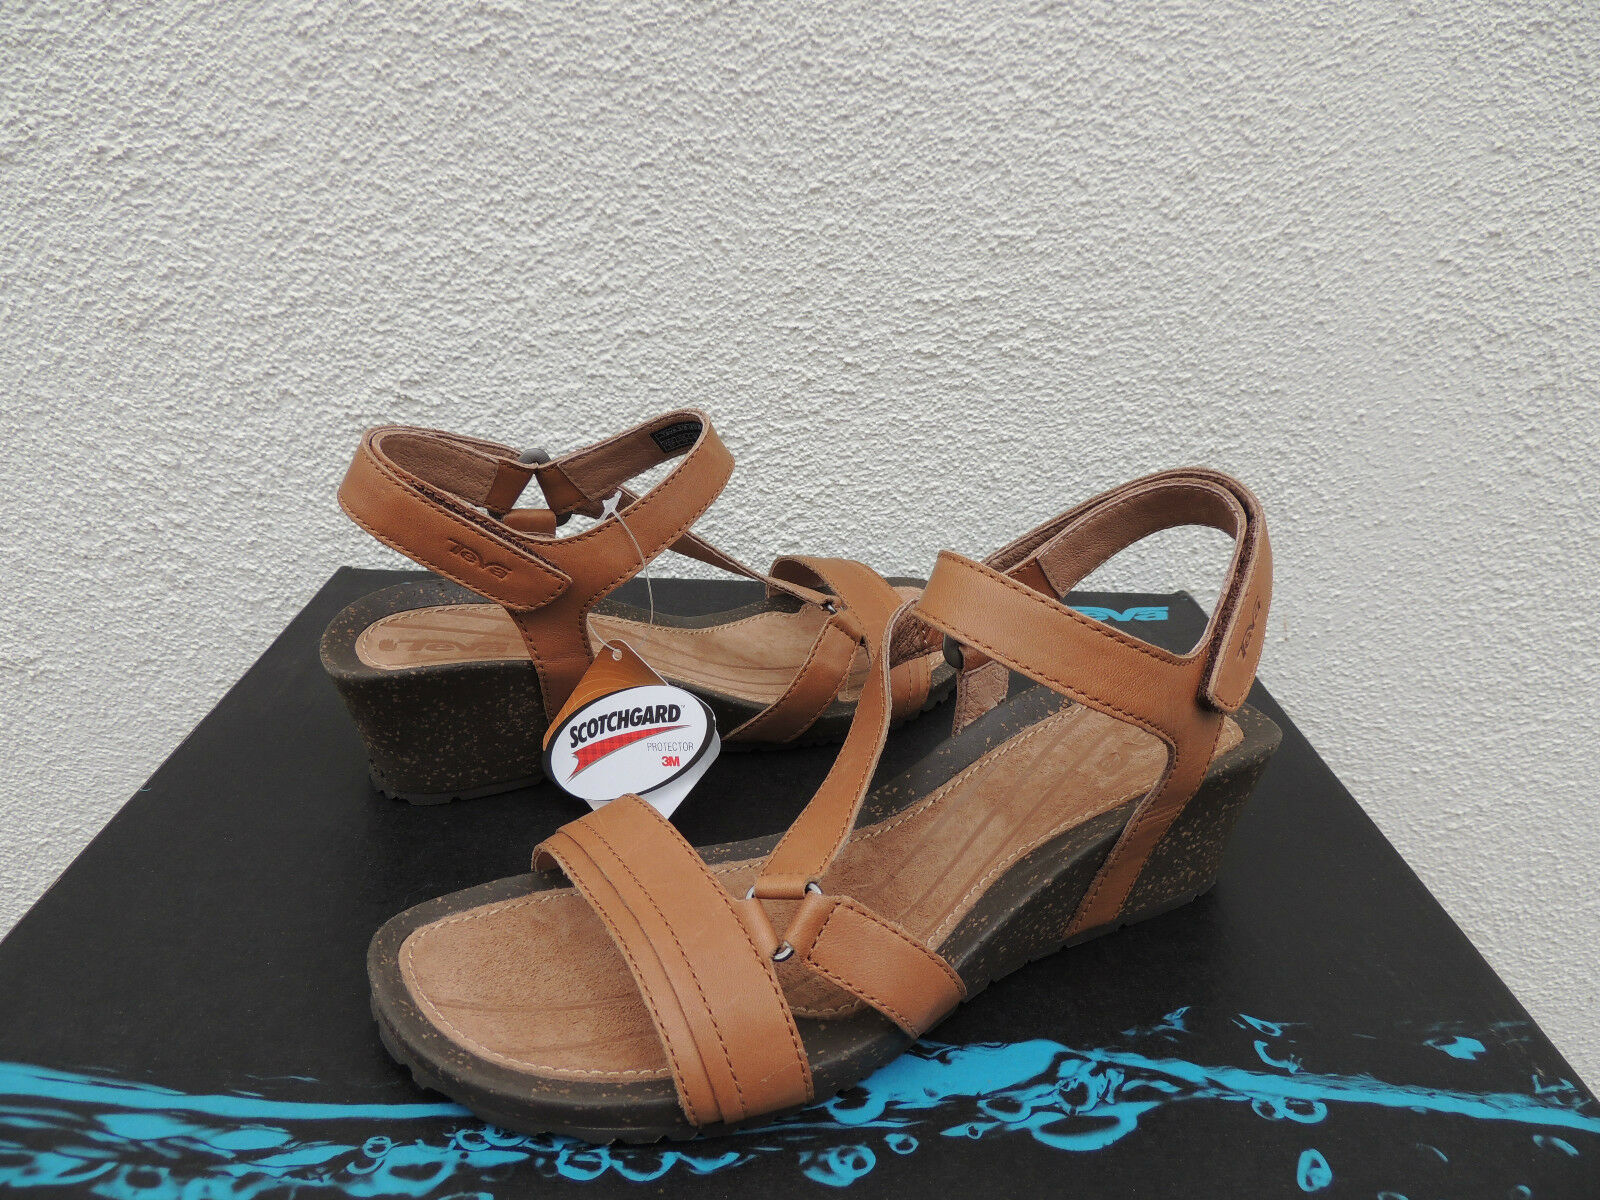 TEVA TAN CABRILLO CROSSOVER WEDGE LEATHER SANDALS,   9.5/ EUR 40.5 ~NIB